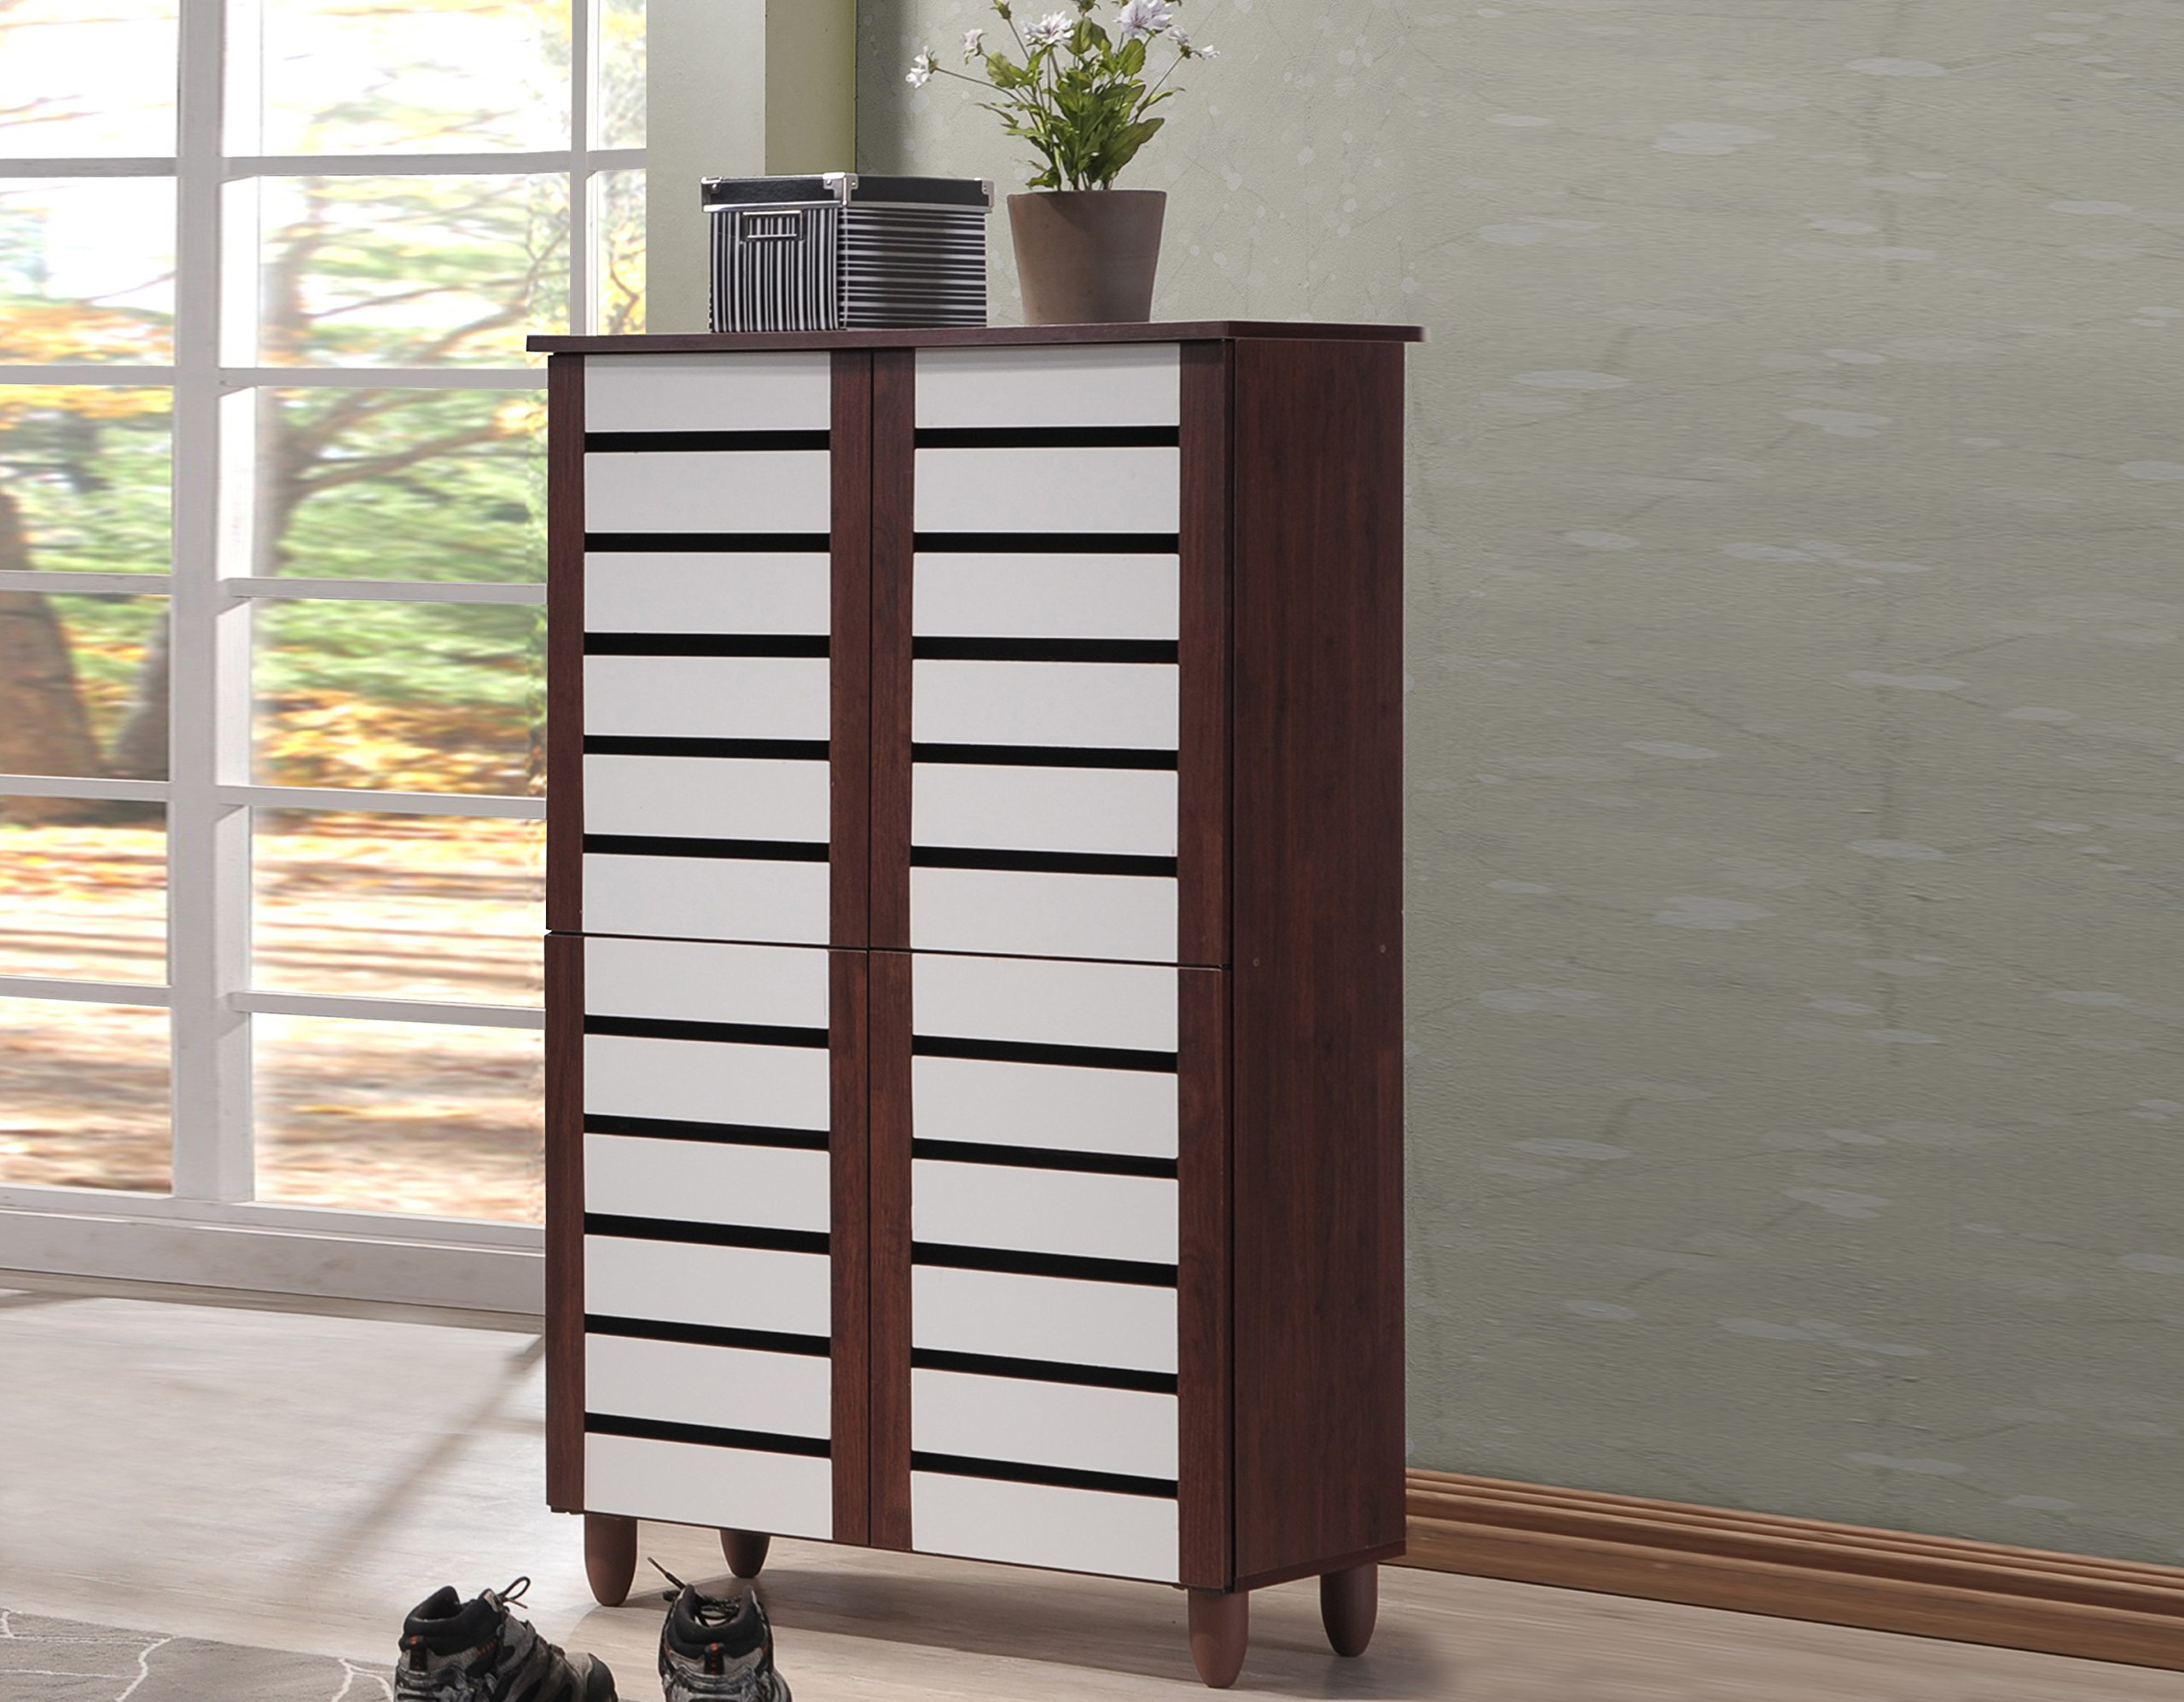 storage ikea organizer in ent pics compartments rustic wooden ottoman bench entryway entry with modern narrow pictures australia outstanding way shoe fascinating on chests amazing small furniture cabinet cabinets and white hemnes beadboard doors benches